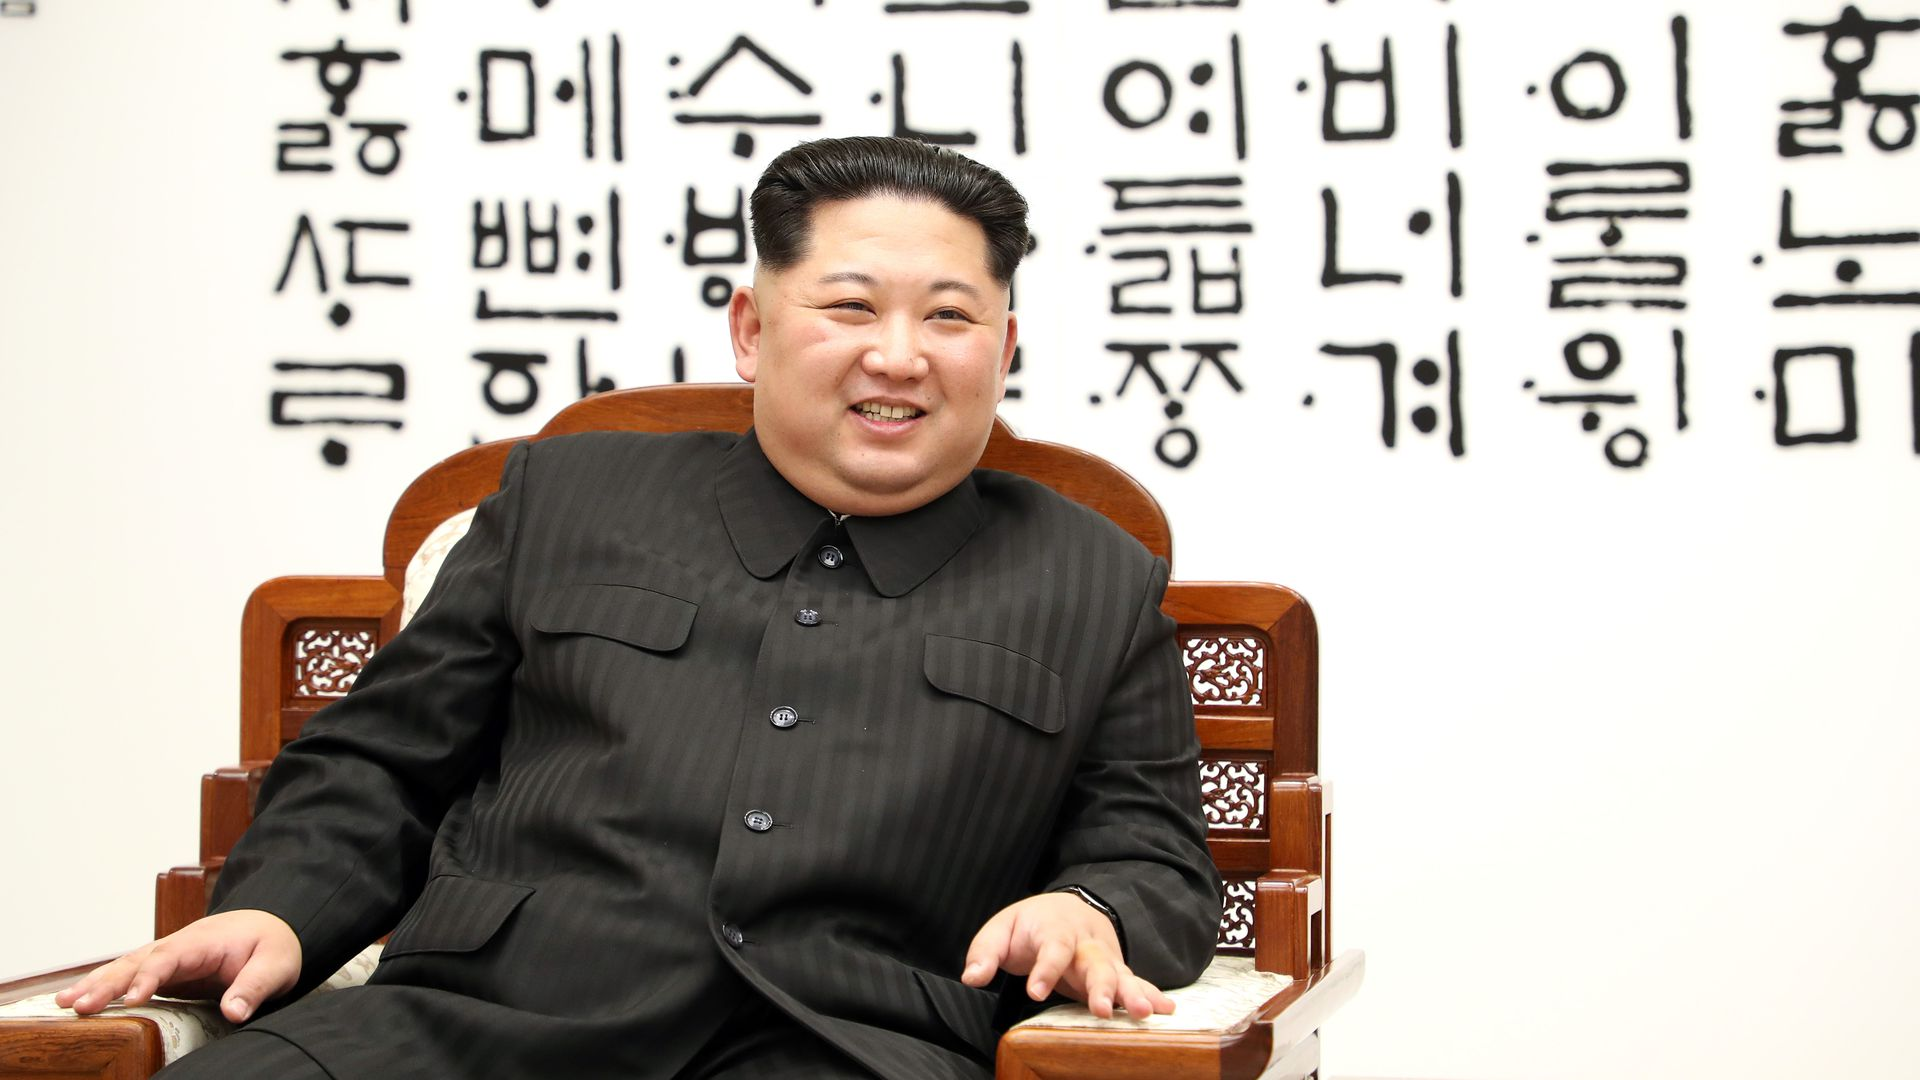 Kim Jong-un sits in chair smiling.